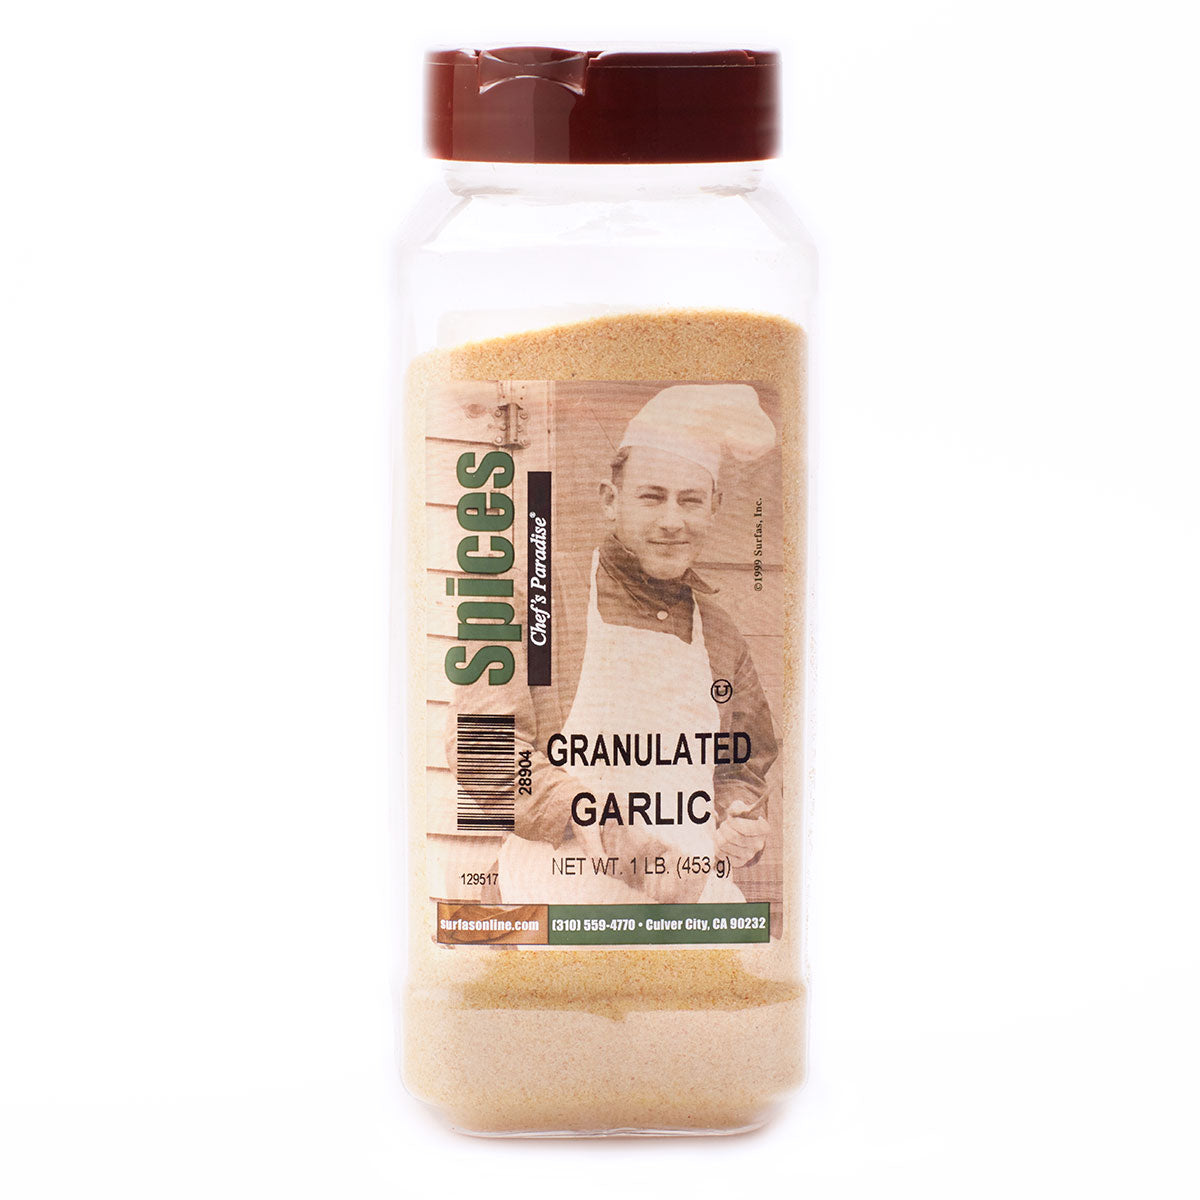 Garlic Granulated 16oz